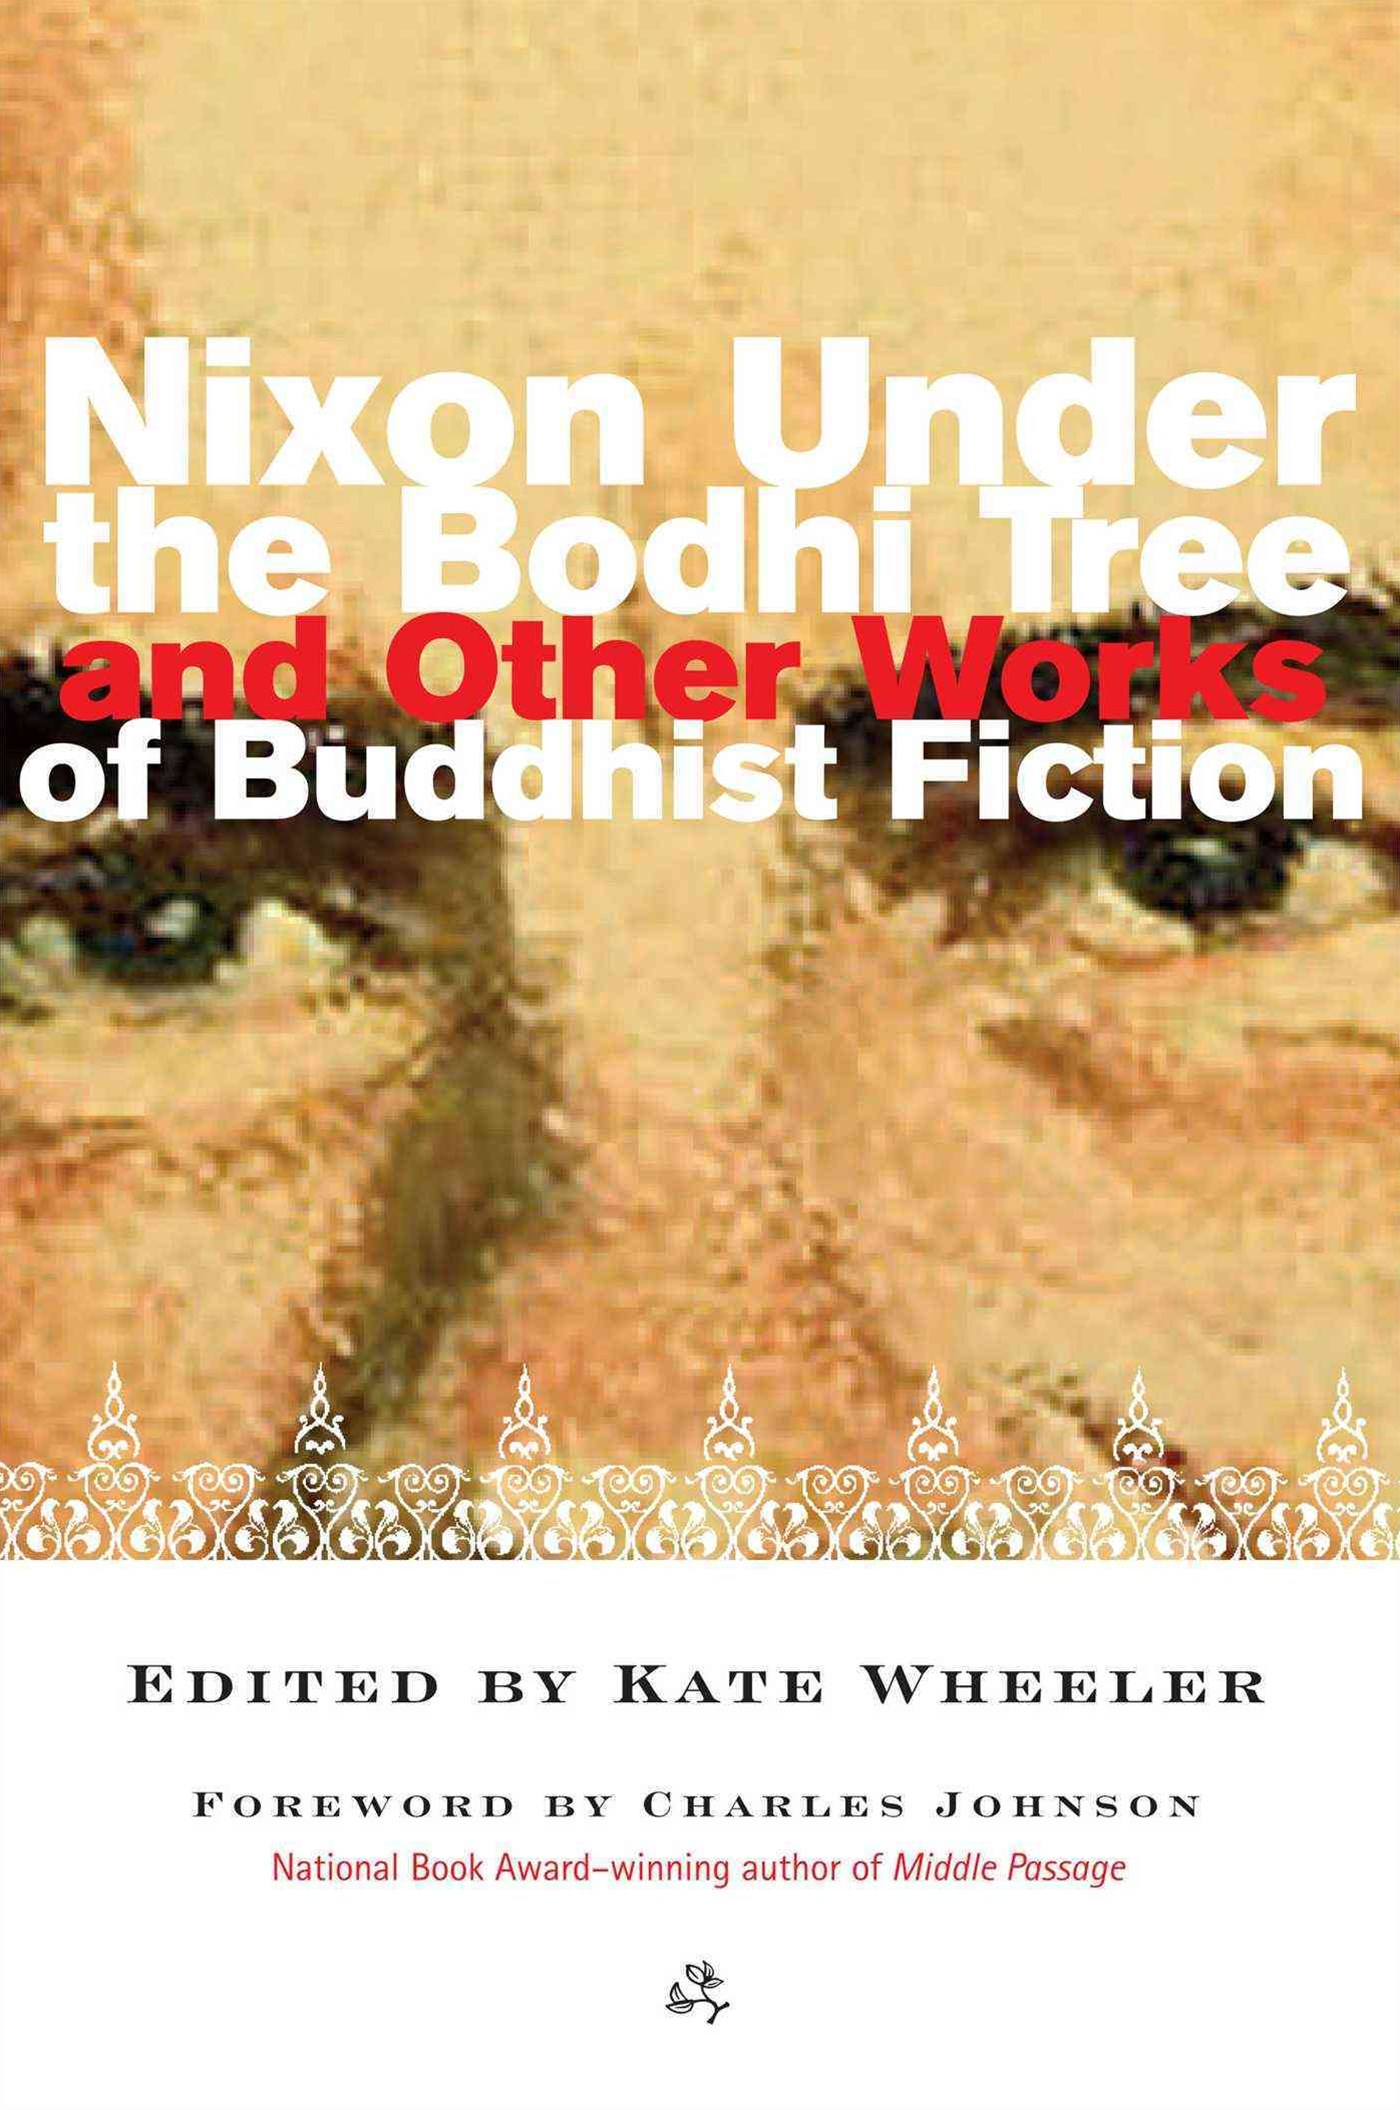 Nixon Under the Bodhi Tree